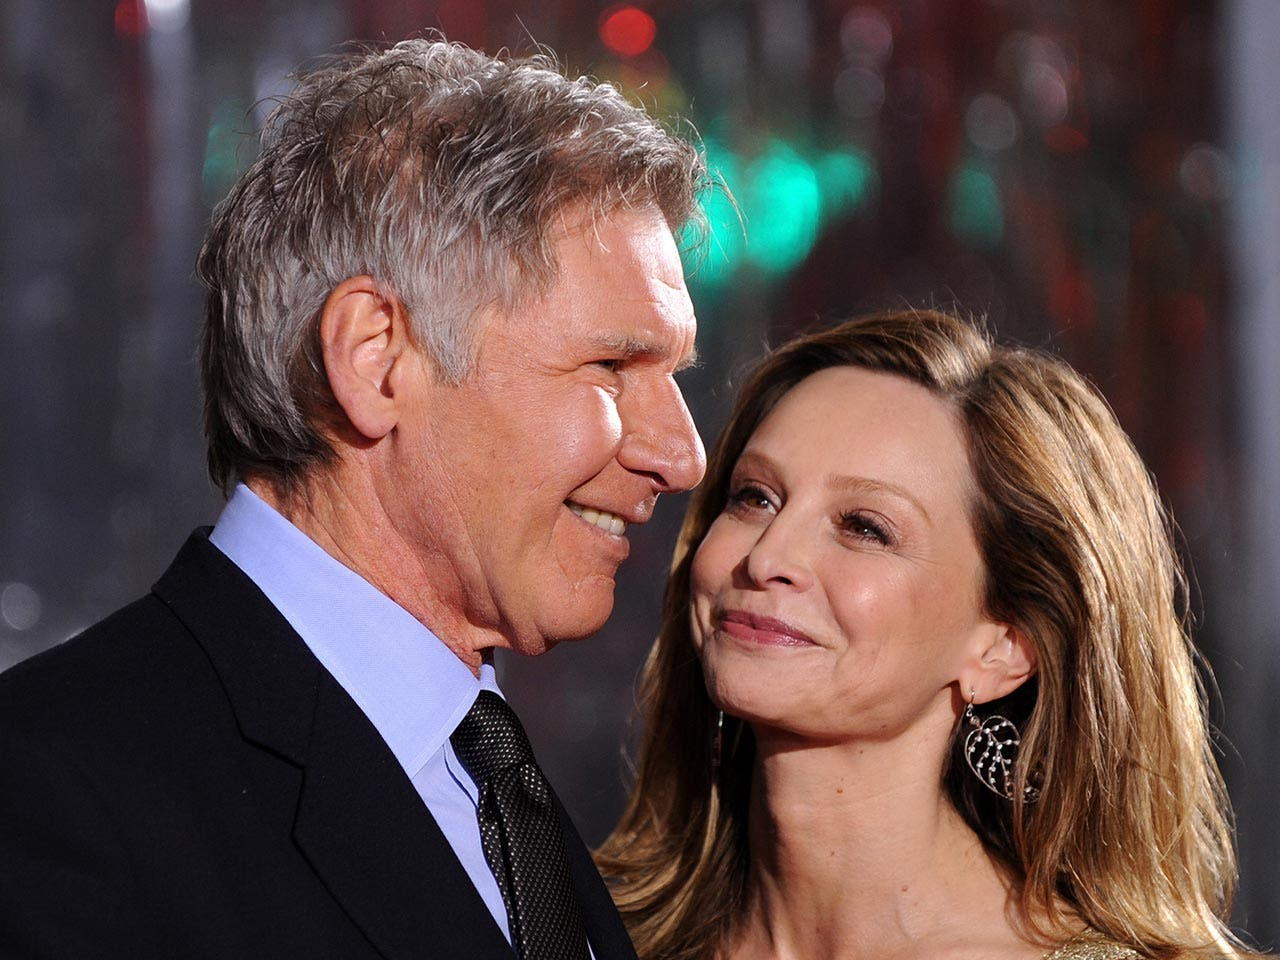 Harrison Ford and Calista Flockhart | Frazer Harrison/Getty Images